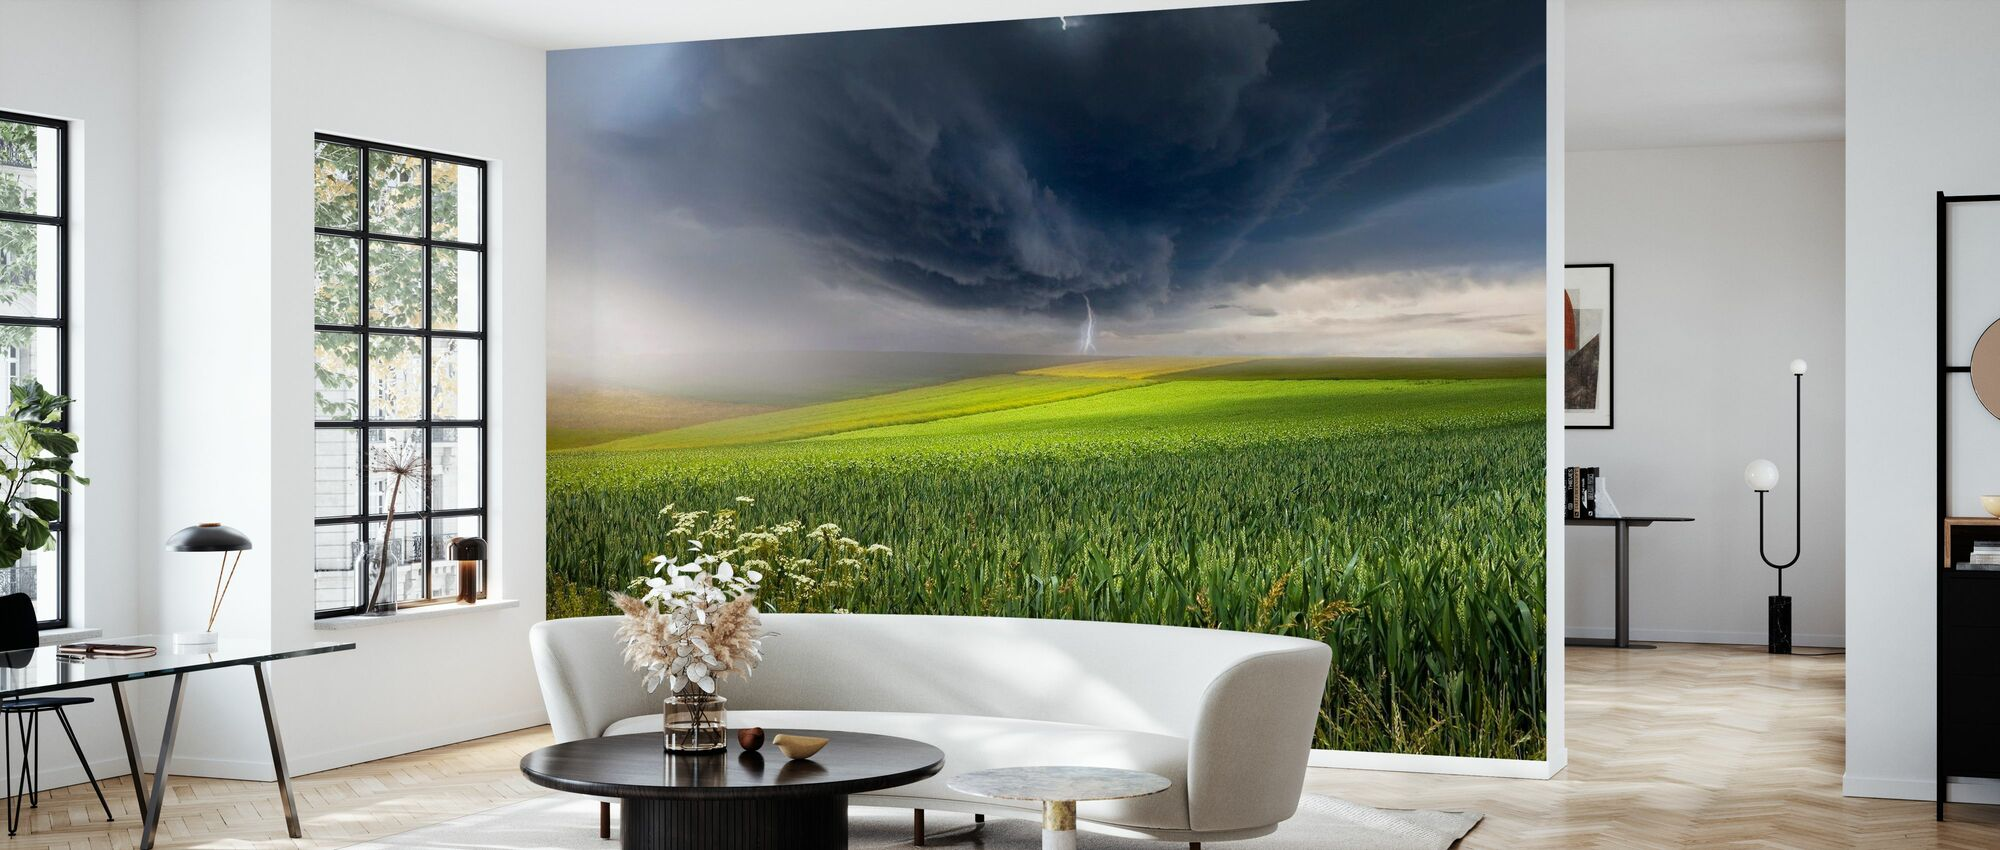 June Storm - Wallpaper - Living Room